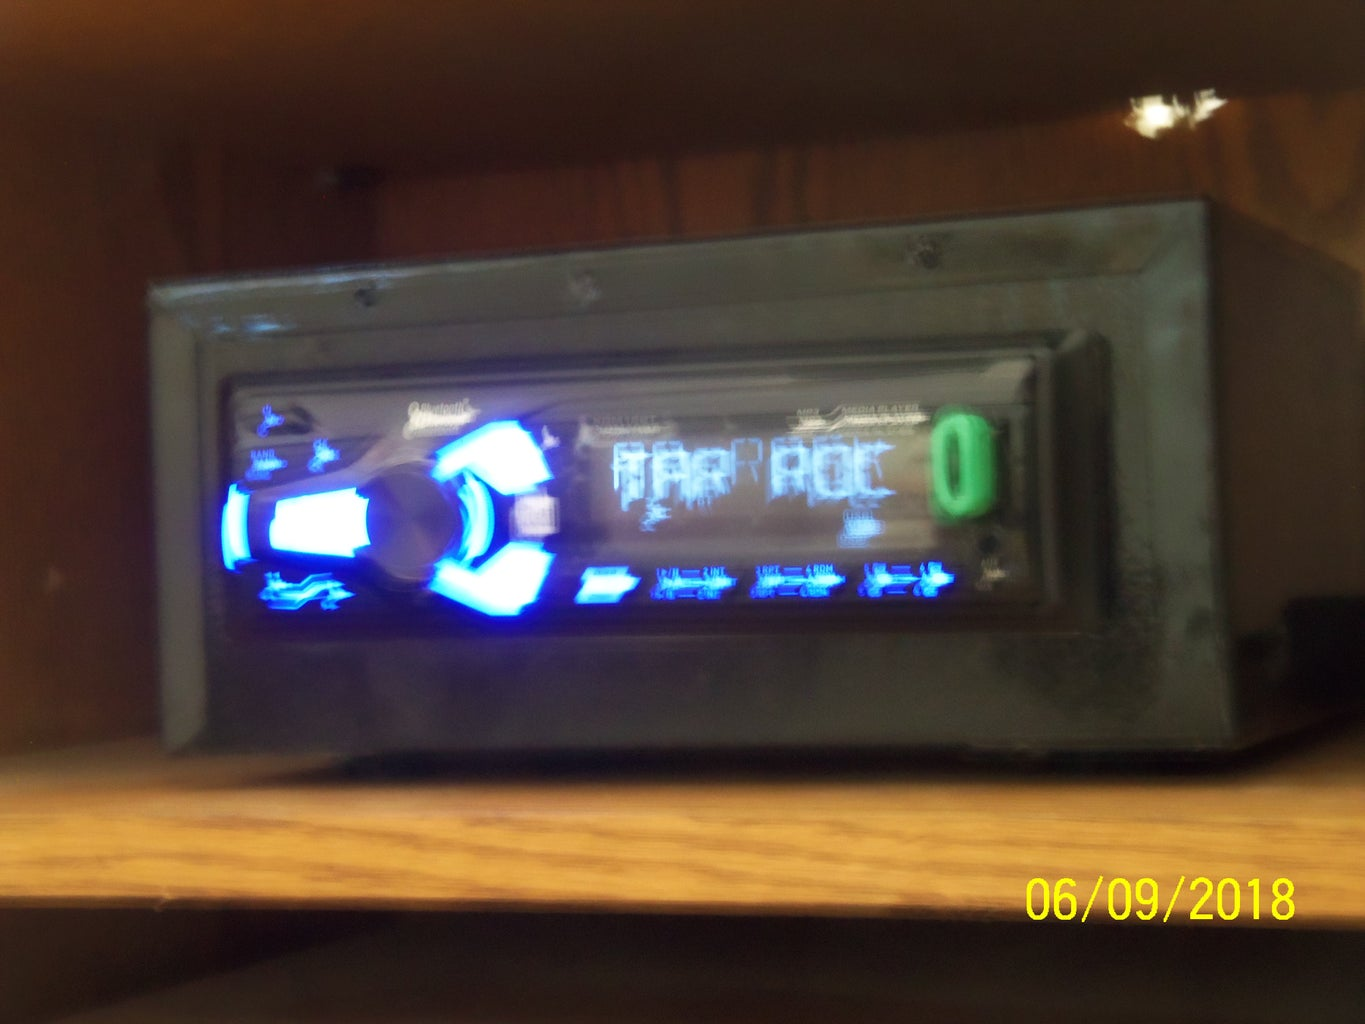 Using an Automotive Stereo to Play Mp3s on Older Home Stereo